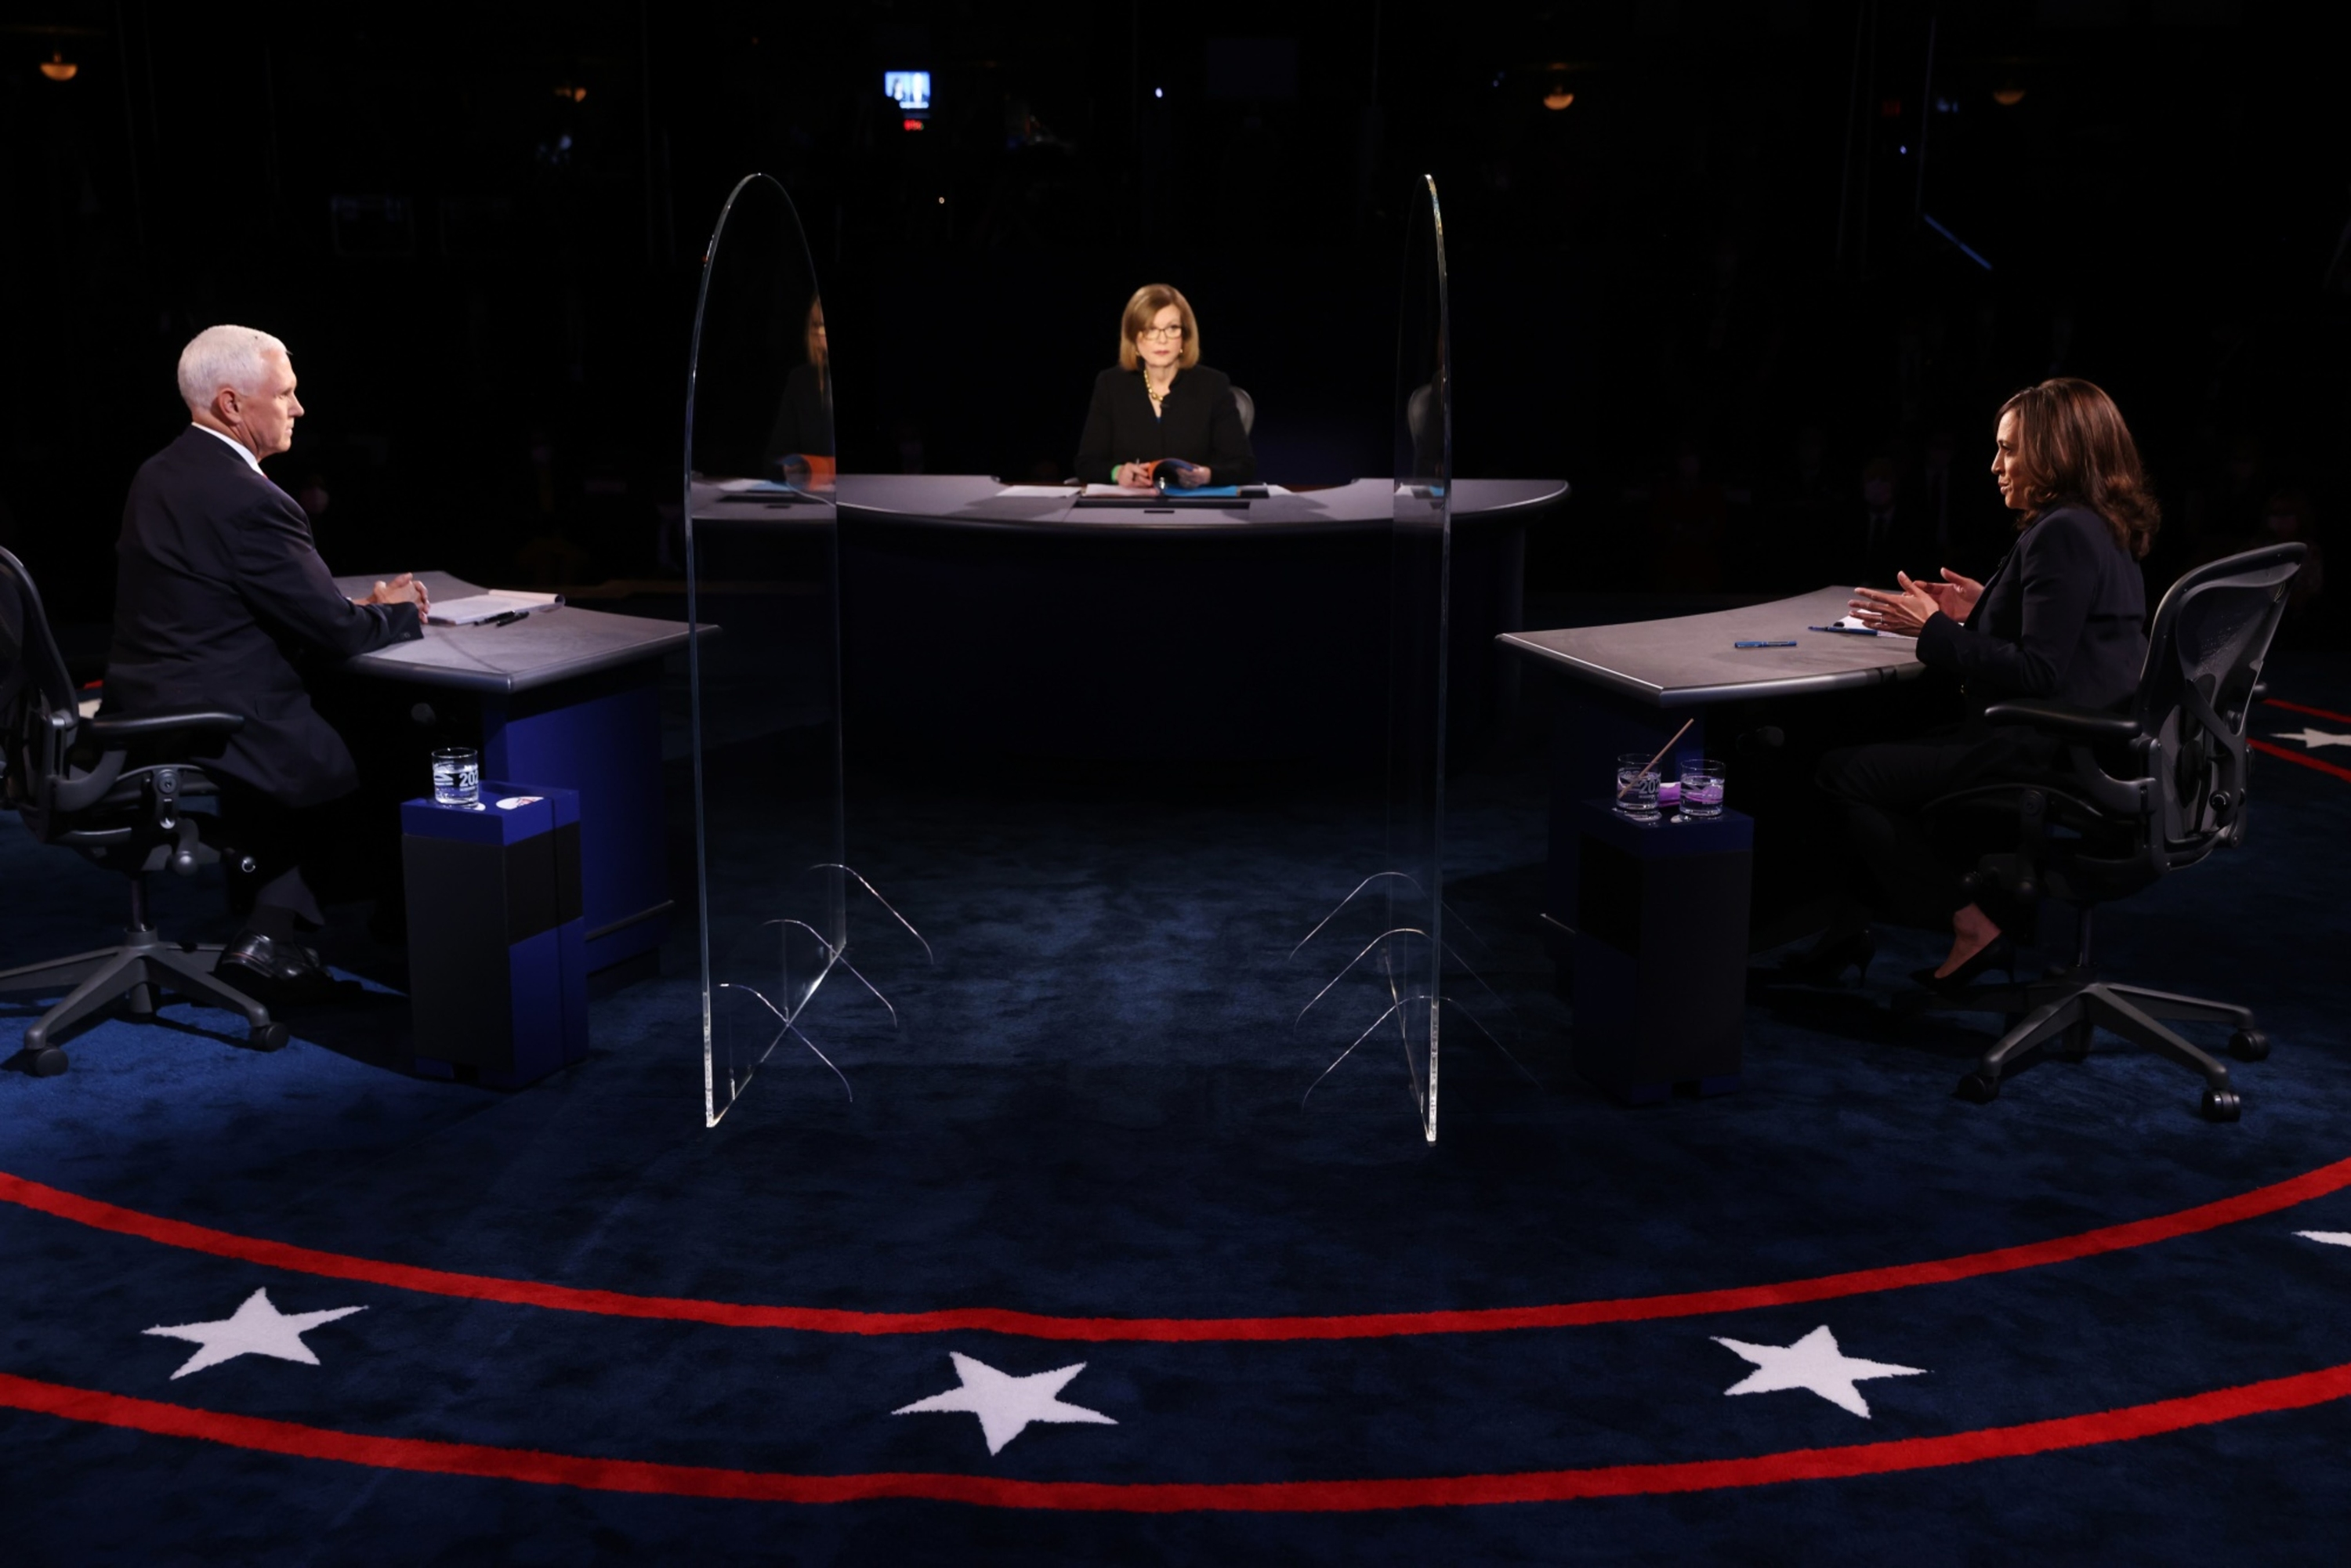 A rogue fly is the biggest buzz at the VP debate, and fallout from the stimulus freeze: Thursday Wake-Up Call